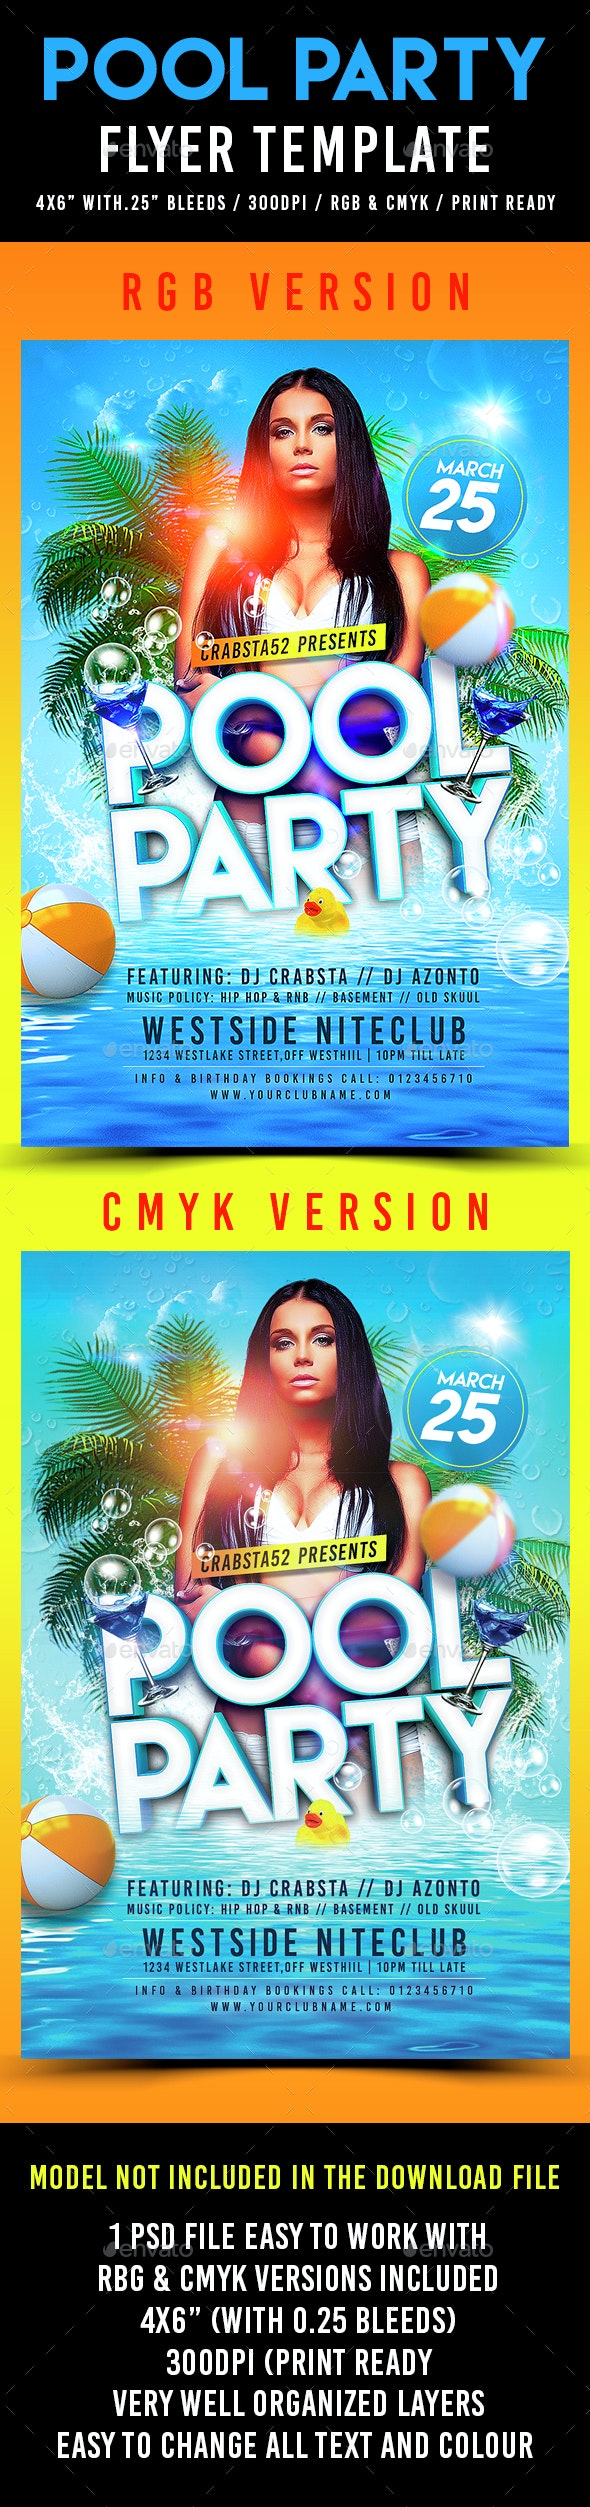 Pool Party Flyer Template - Flyers Print Templates